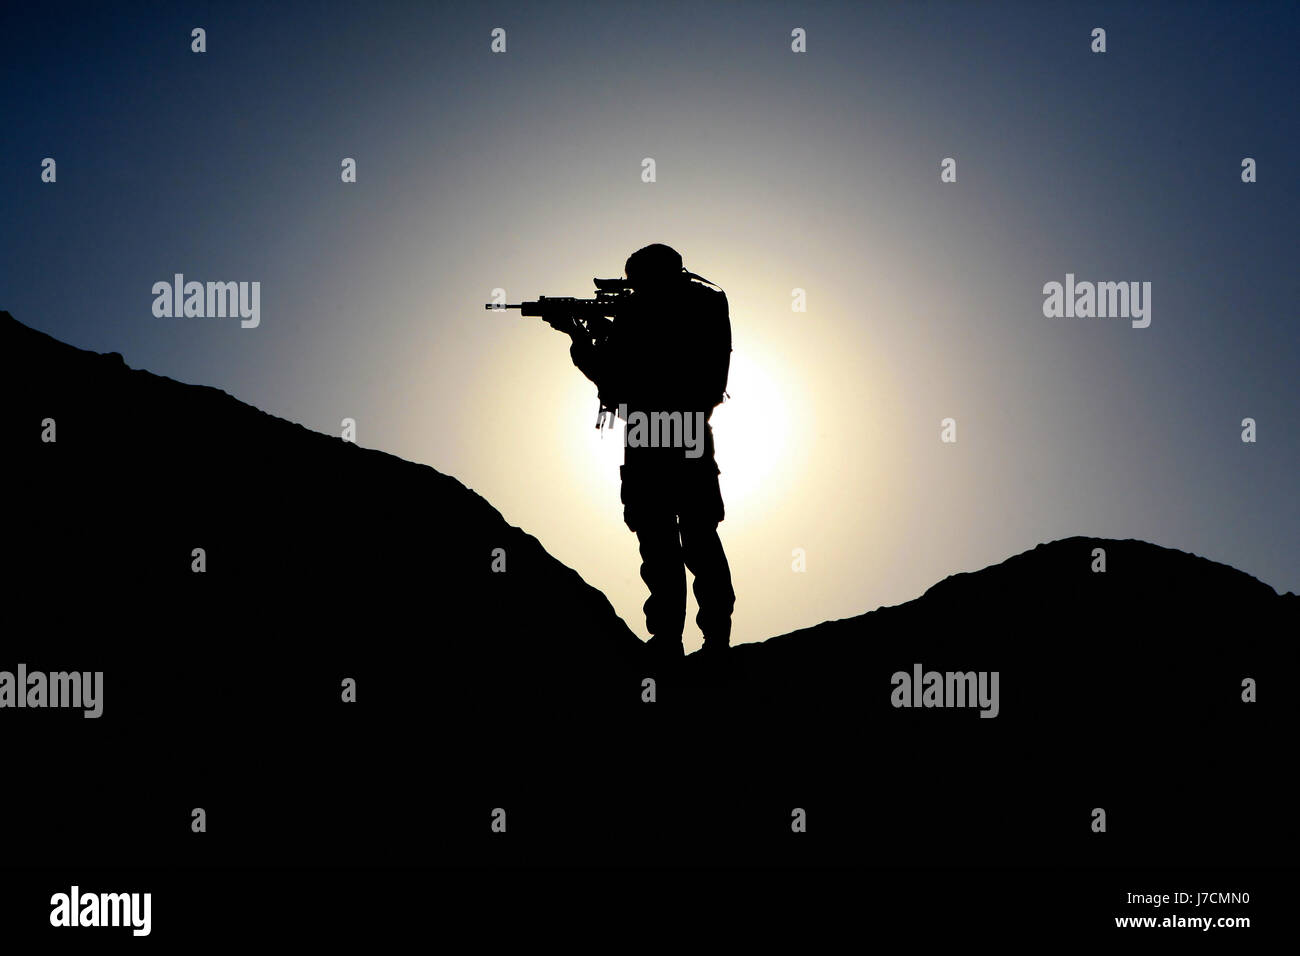 silhouette of a Royal Marine Commando at Kala Bost Fort Helmand Province Afghanistan - 02/11/2006 - Stock Image